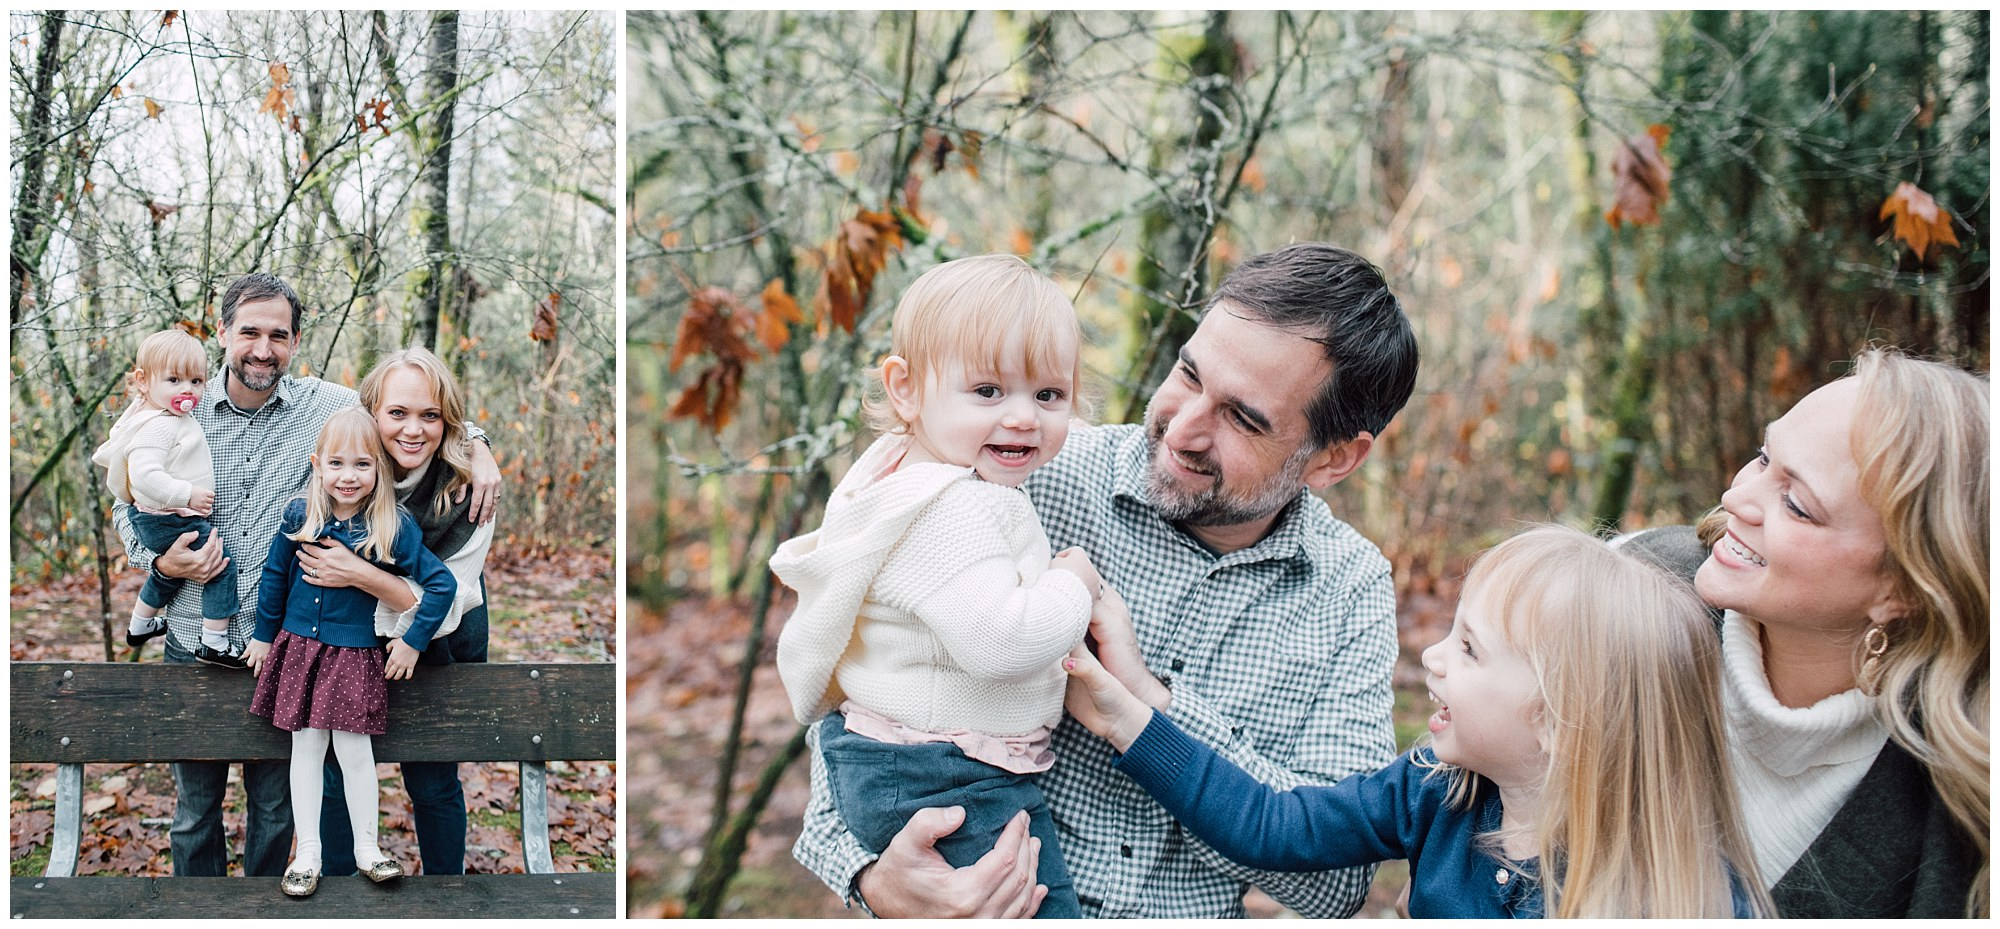 the Happy Film Company - St. Edwards Park - Seattle Family Photography - family standing on bench in forest autumn leaves